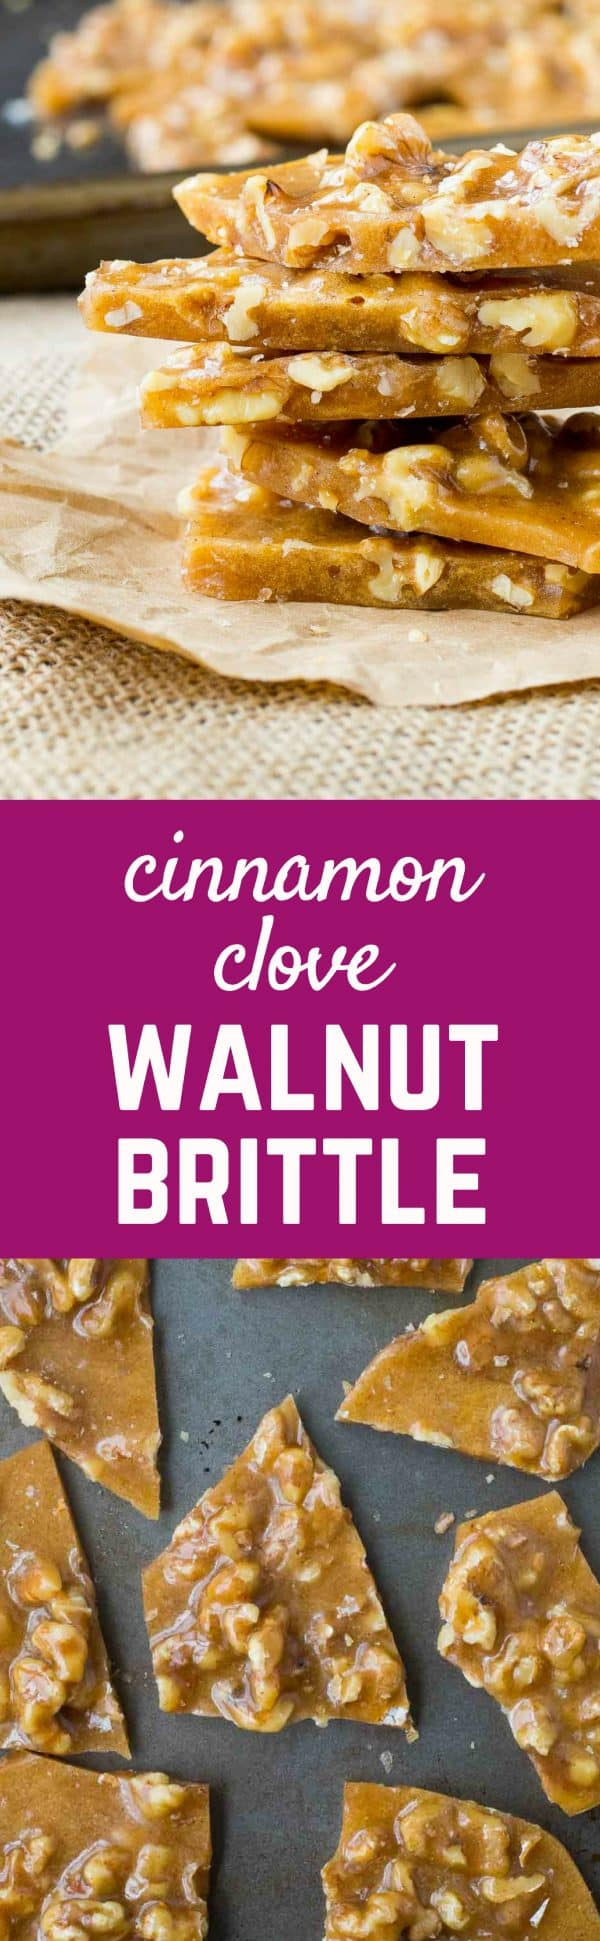 Perfect for gift giving or snacking on at parties, this Walnut Brittle with Cinnamon and Cloves is easy to make and so flavorful thanks to toasted walnuts and warm spices. Get the candy recipe on RachelCooks.com!